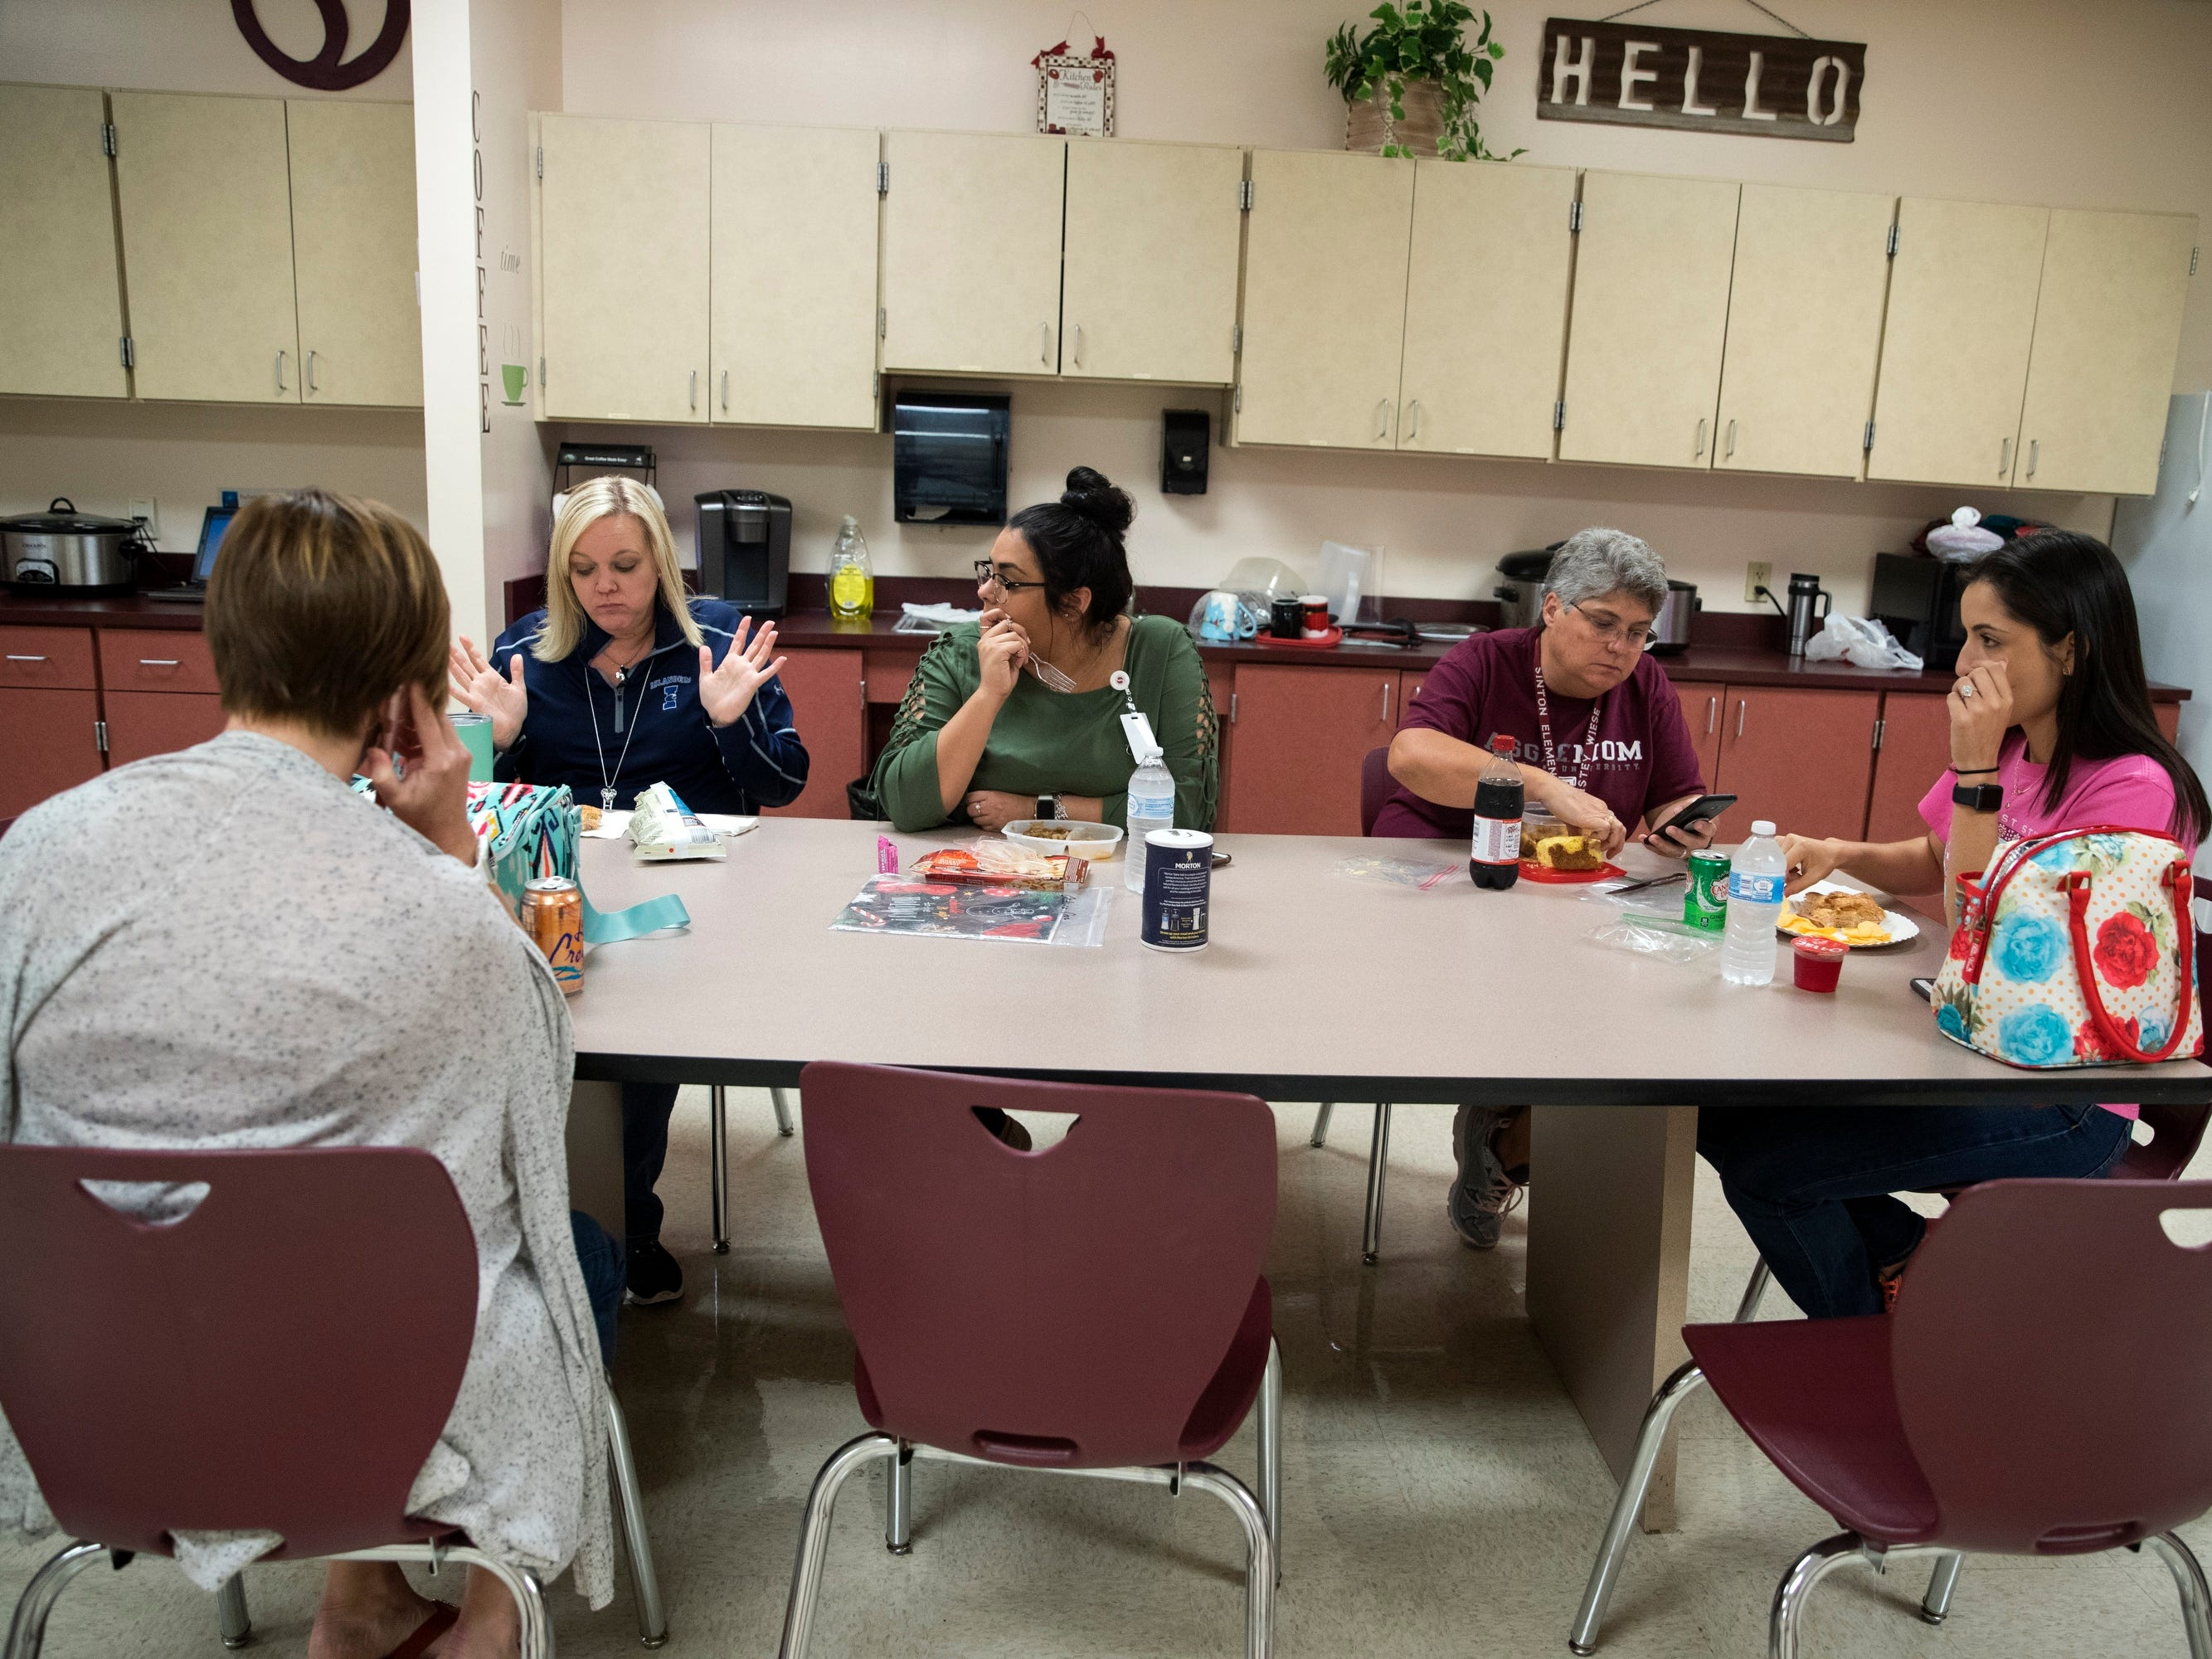 Sinton, TX – Christine McFarland, second from left, speaks with fellow teacher during her 30 minute lunch break.